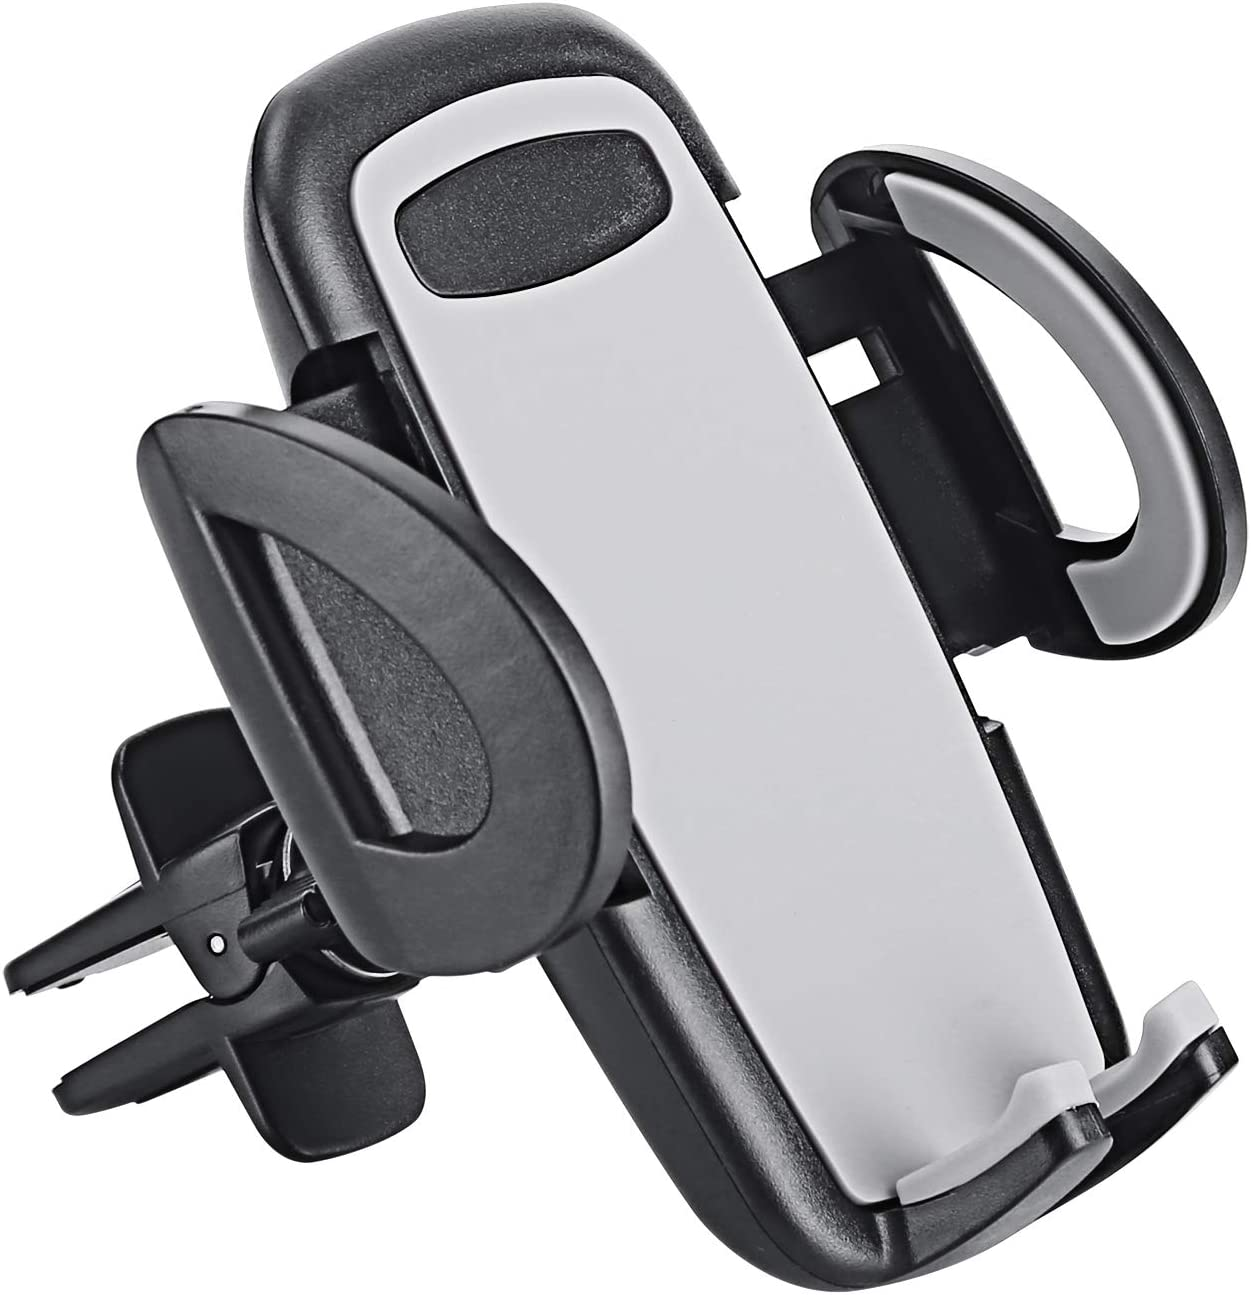 Air Vent Phone Holder for Car, Universal Smartphone Car Air Vent Mount Compatible for iPhone 11 Pro XS Max XR X 8 7 6s Plus Samsung Galaxy S10 S9+ Note9 Google Pixel LG Nexus Nokia